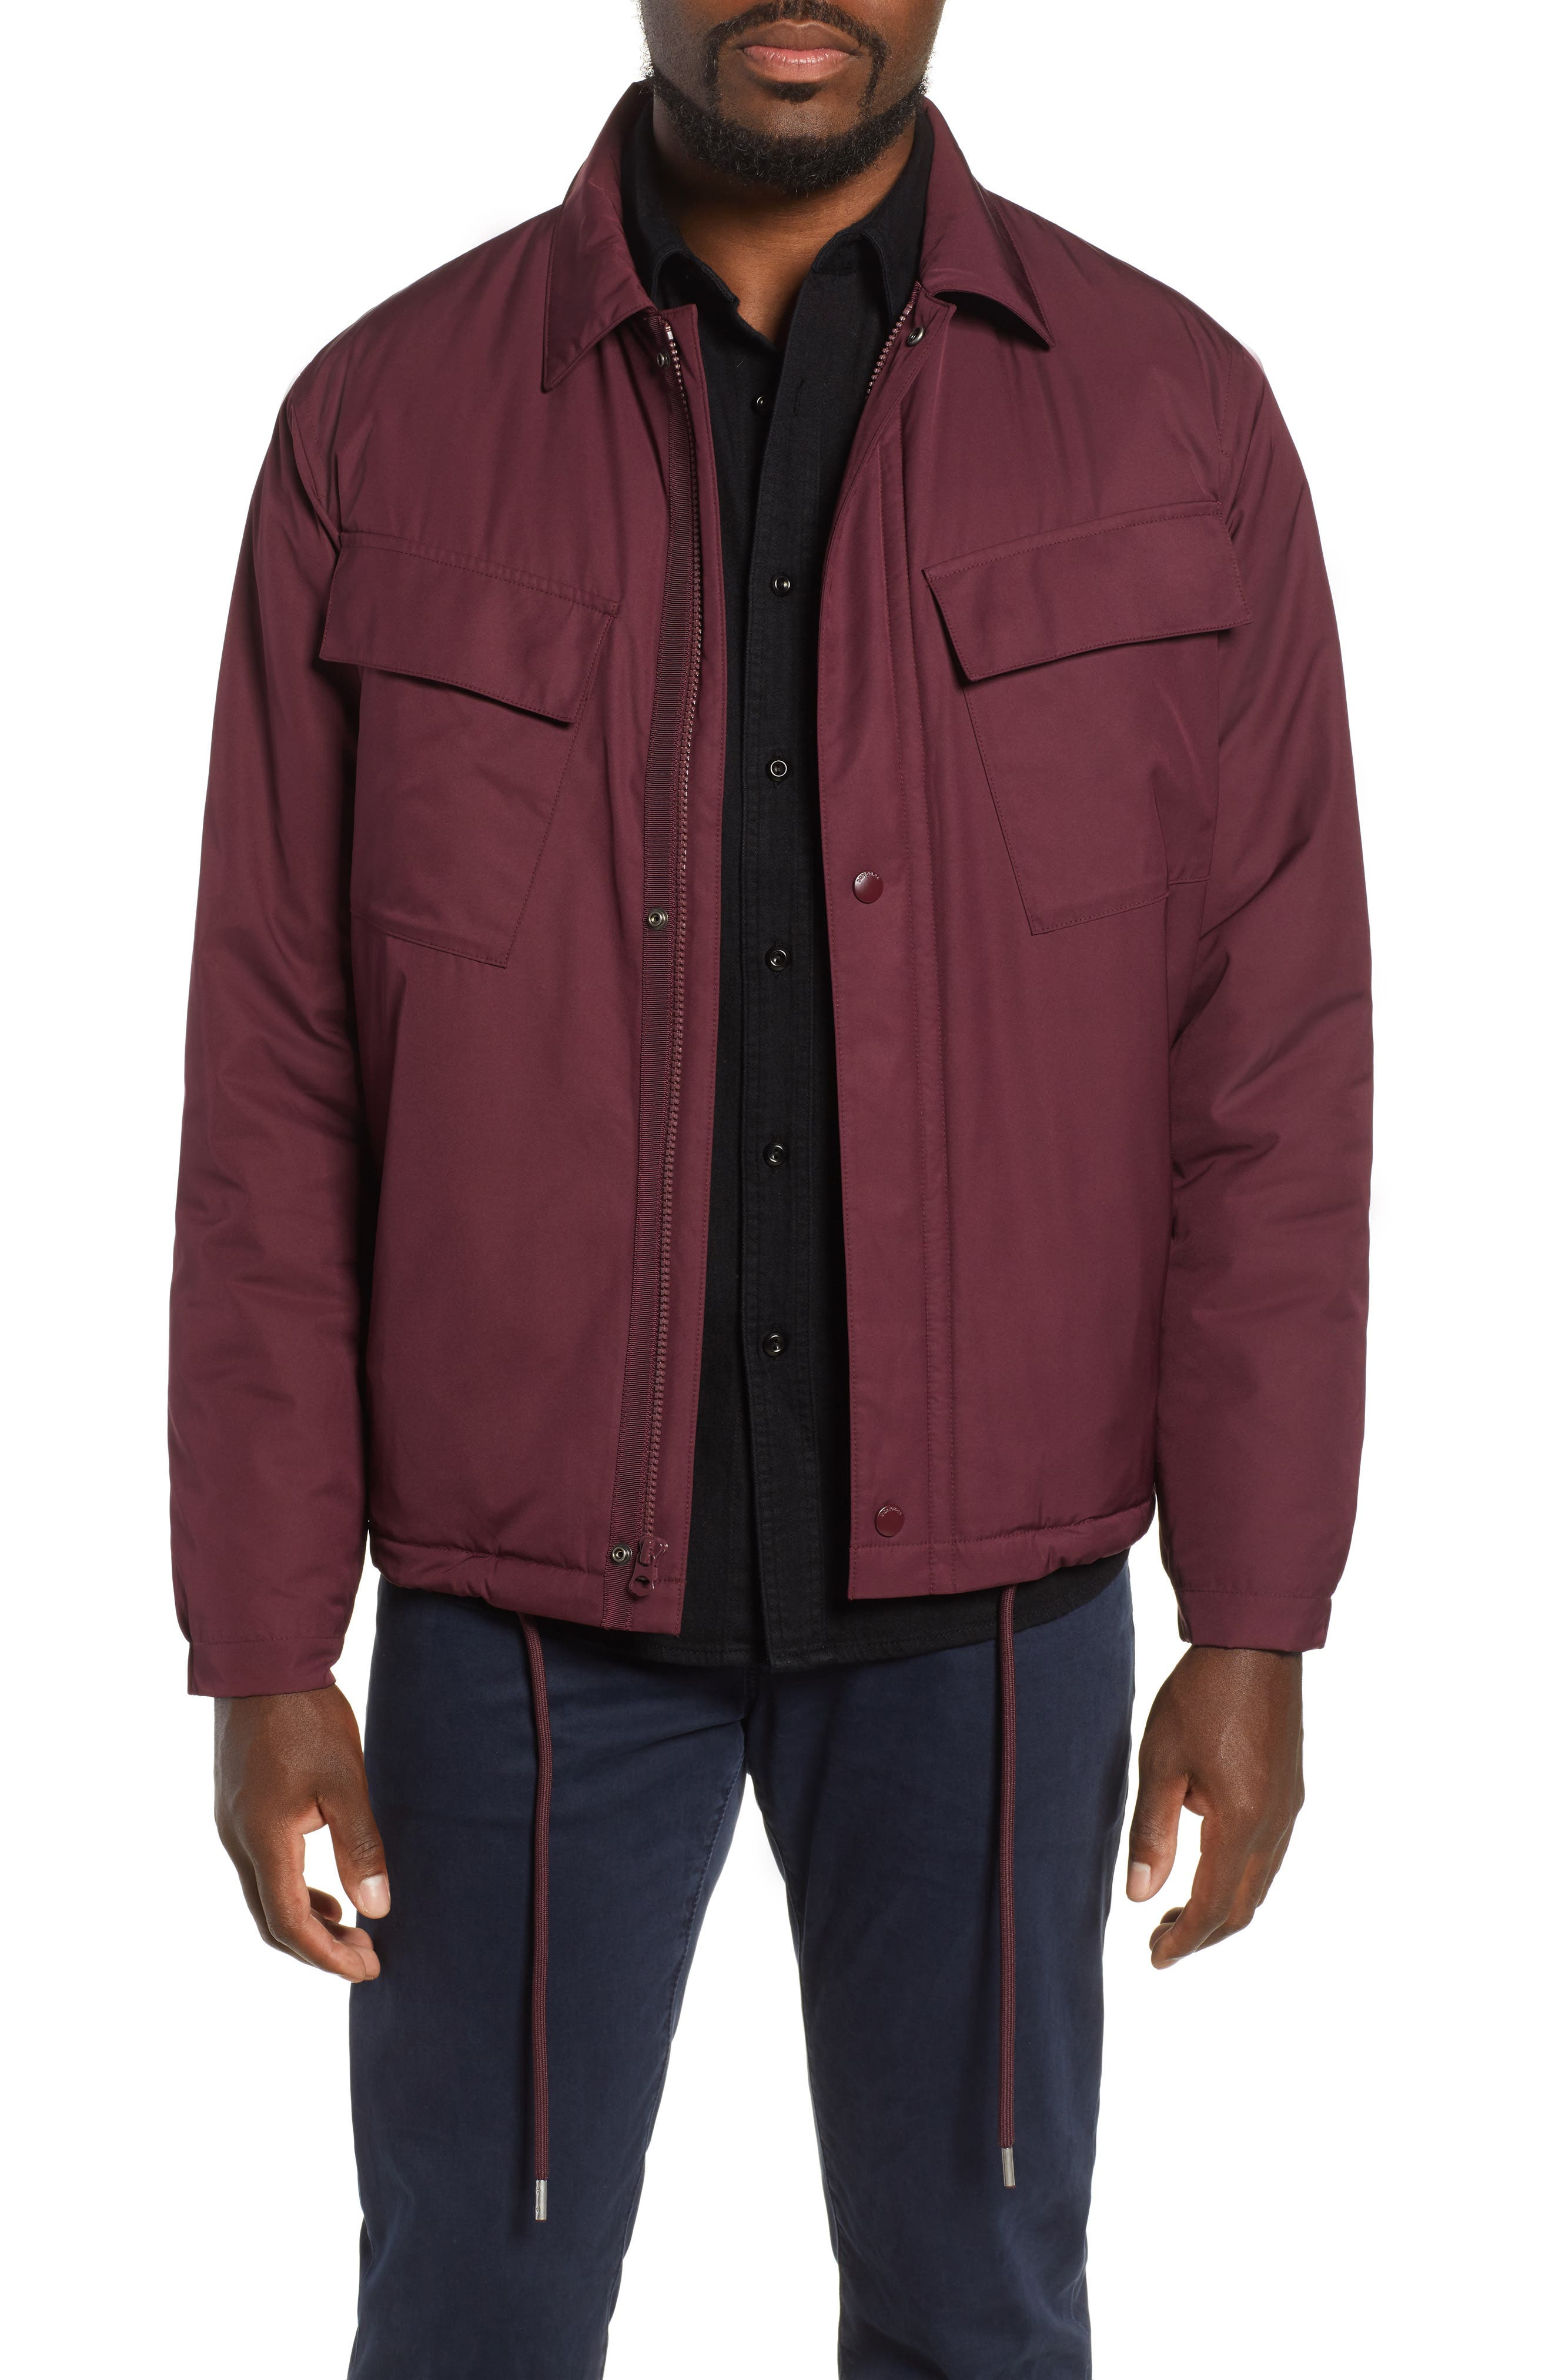 Coaches Jacket,                             Main thumbnail 1, color,                             BURGUNDY